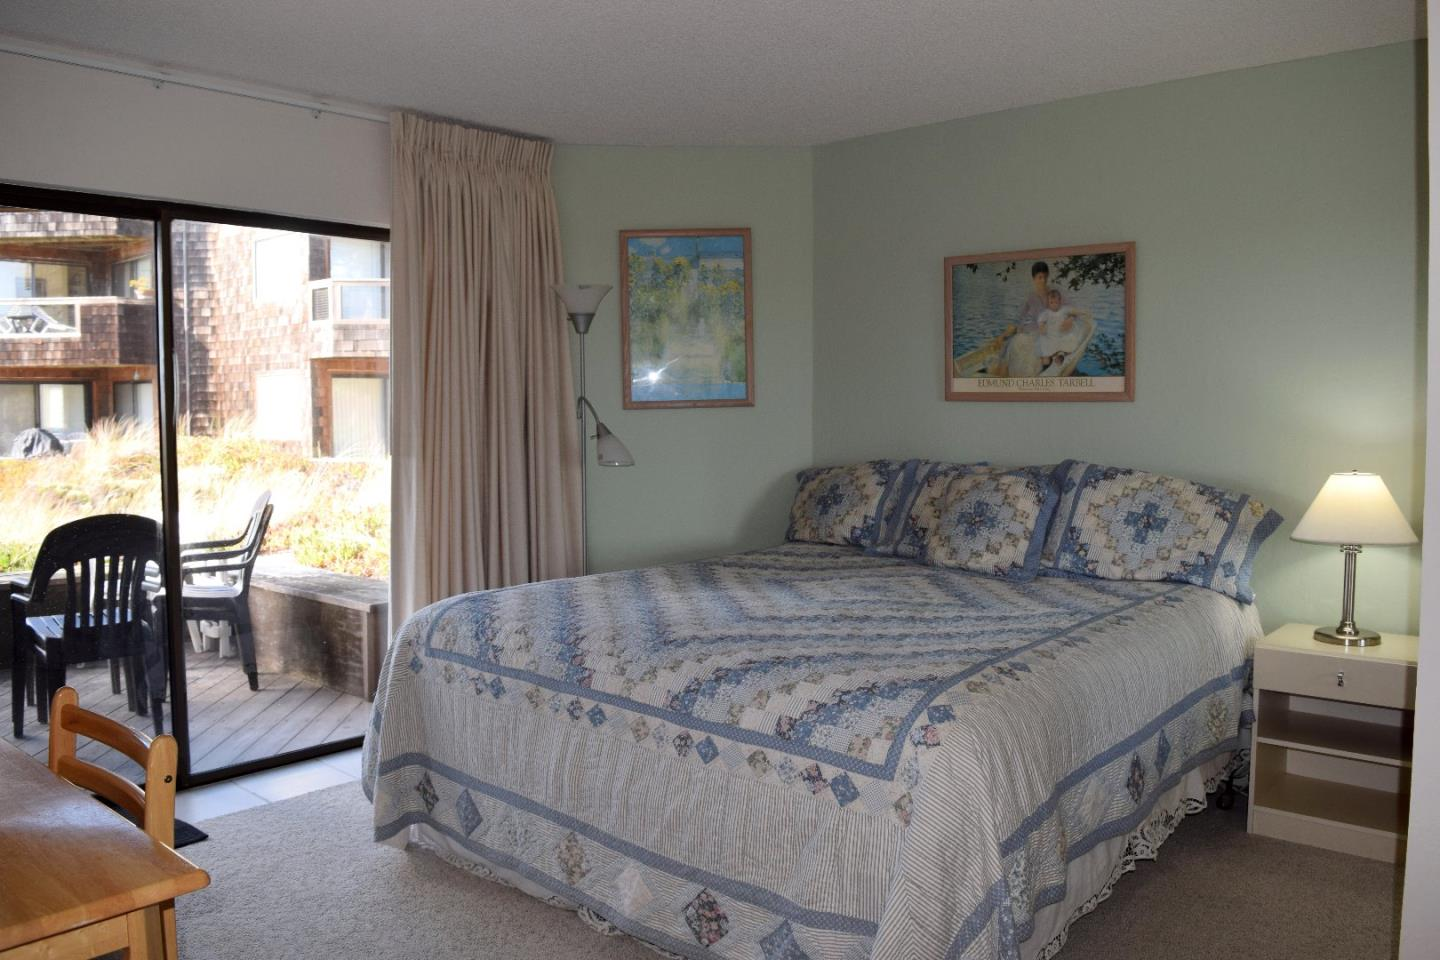 Additional photo for property listing at 101 Shell Drive 101 Shell Drive Watsonville, カリフォルニア 95076 アメリカ合衆国